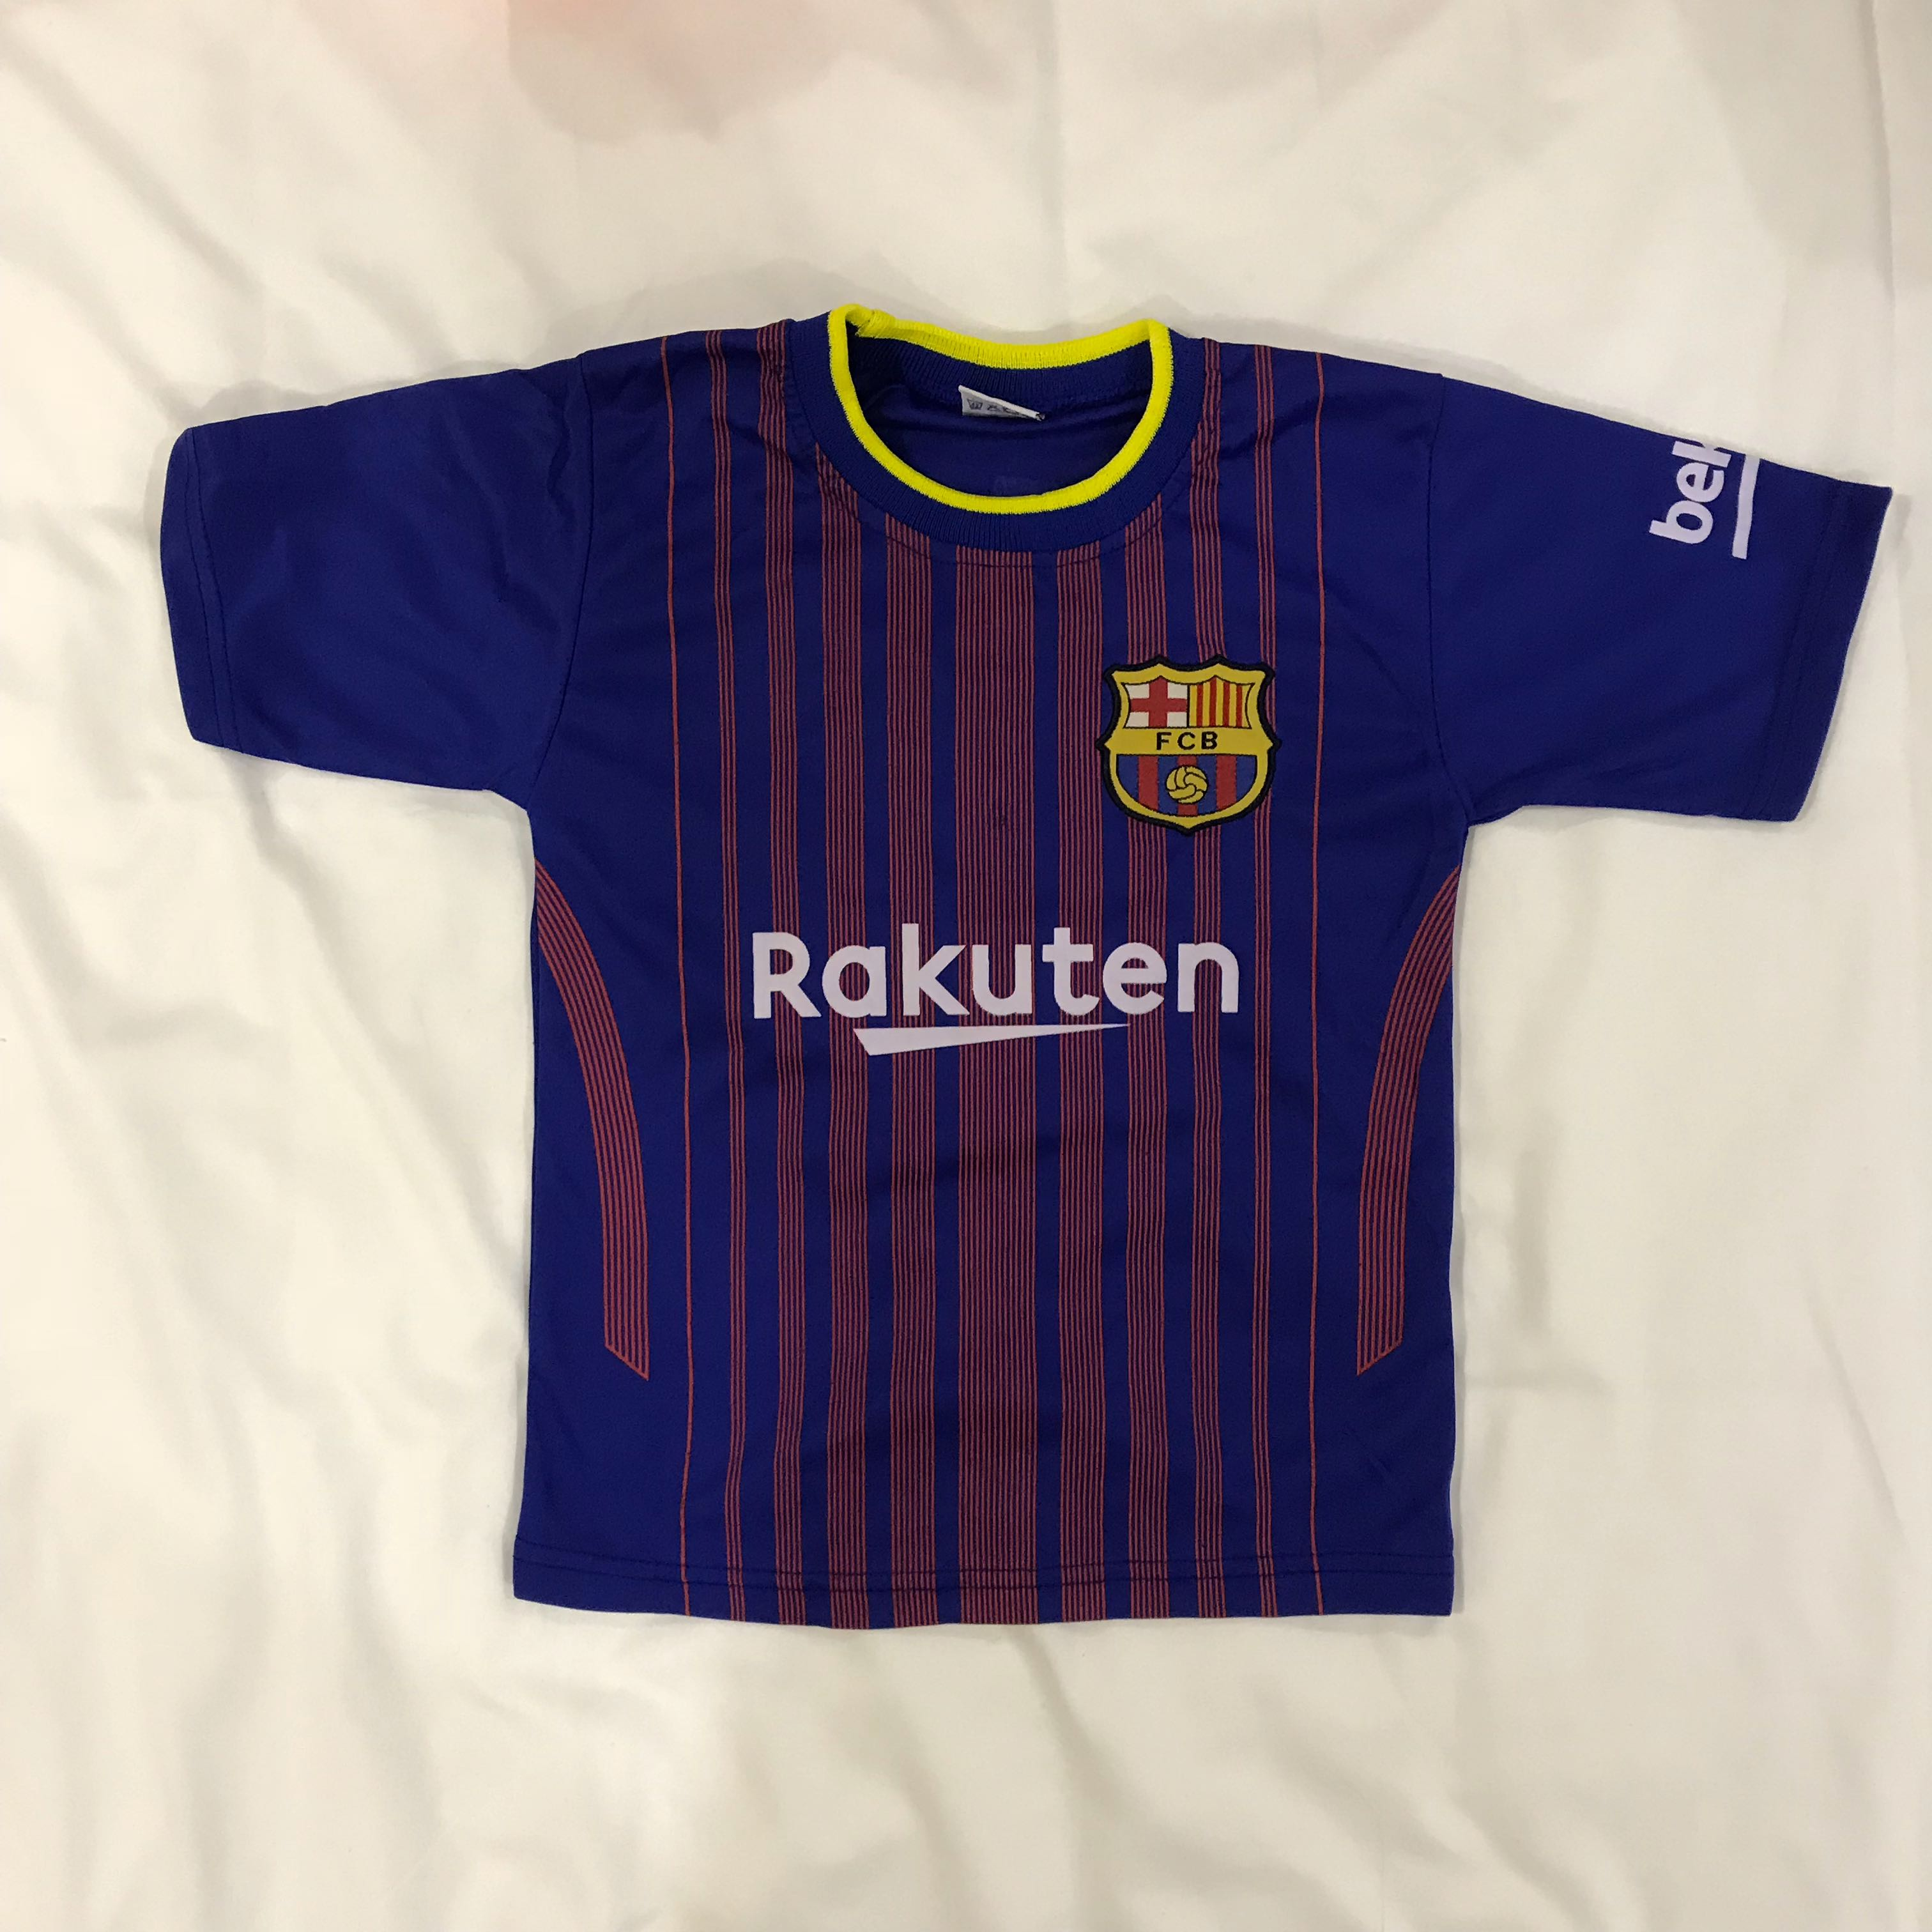 save off 43a4b 83967 Kids Barcelona Messi Jersey